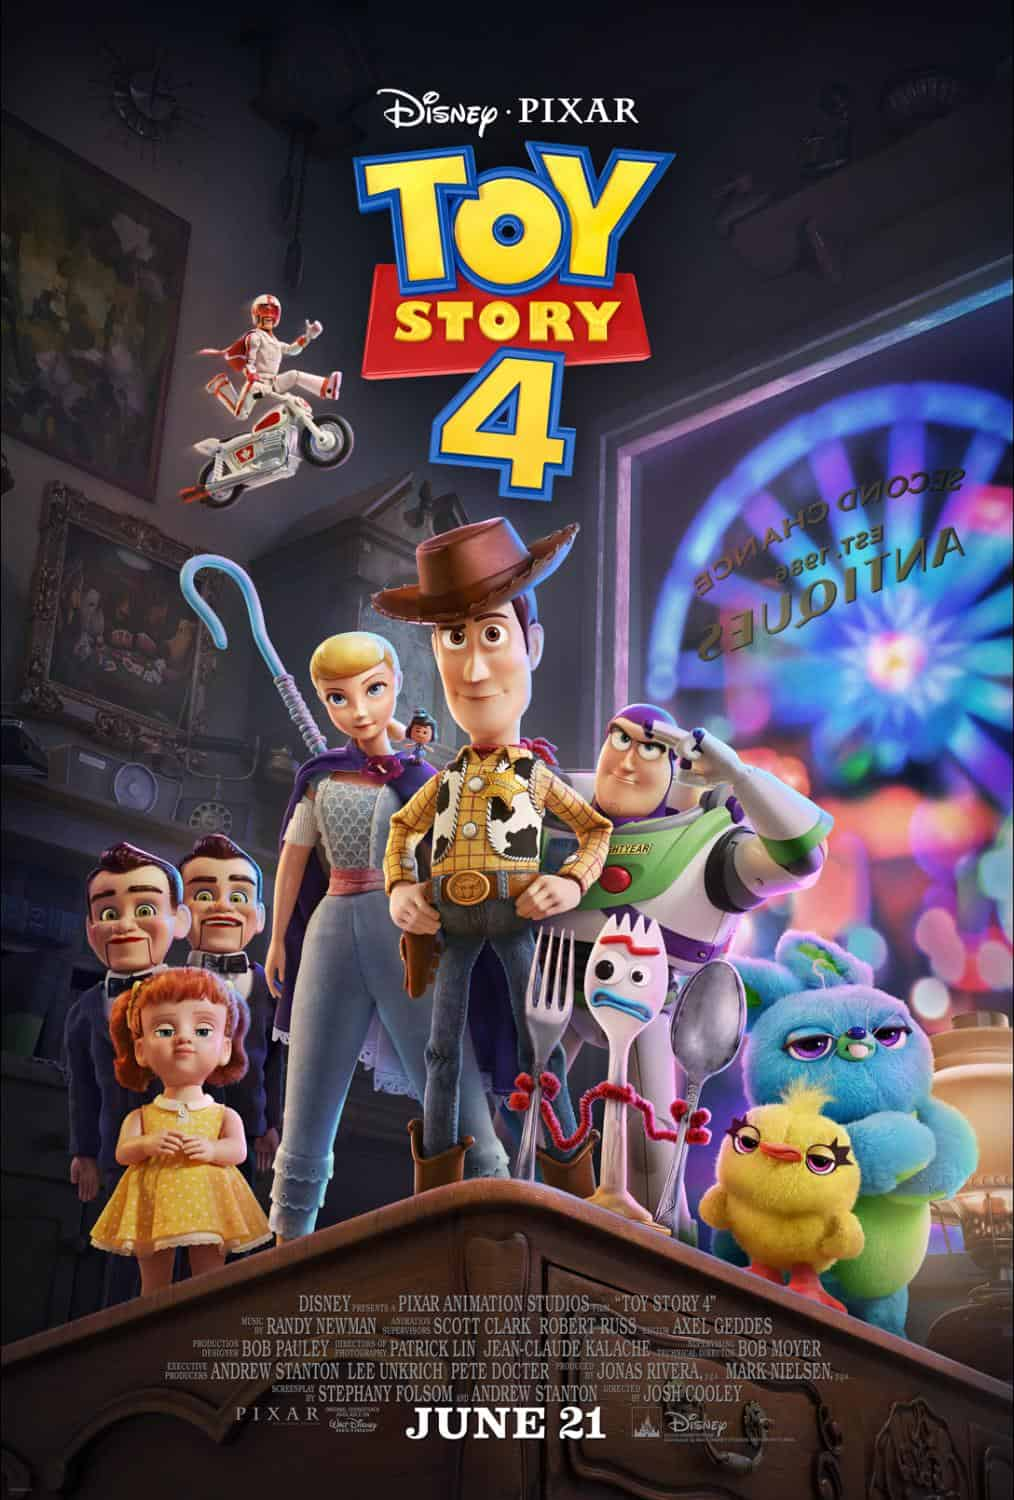 Wow! To Inifinity And Your Mom! The Gang is back! The Toy Story 4 Trailer looks pretty amazing. I admit, I am a bit of a sappy Toy Story Geek so I am so looking forward to this movie. Super excited to meet the new characters of Forky, Ducky and Bunny too. Here is my Offical Toy Story 4 Reaction Video. #toystory4 #toystory